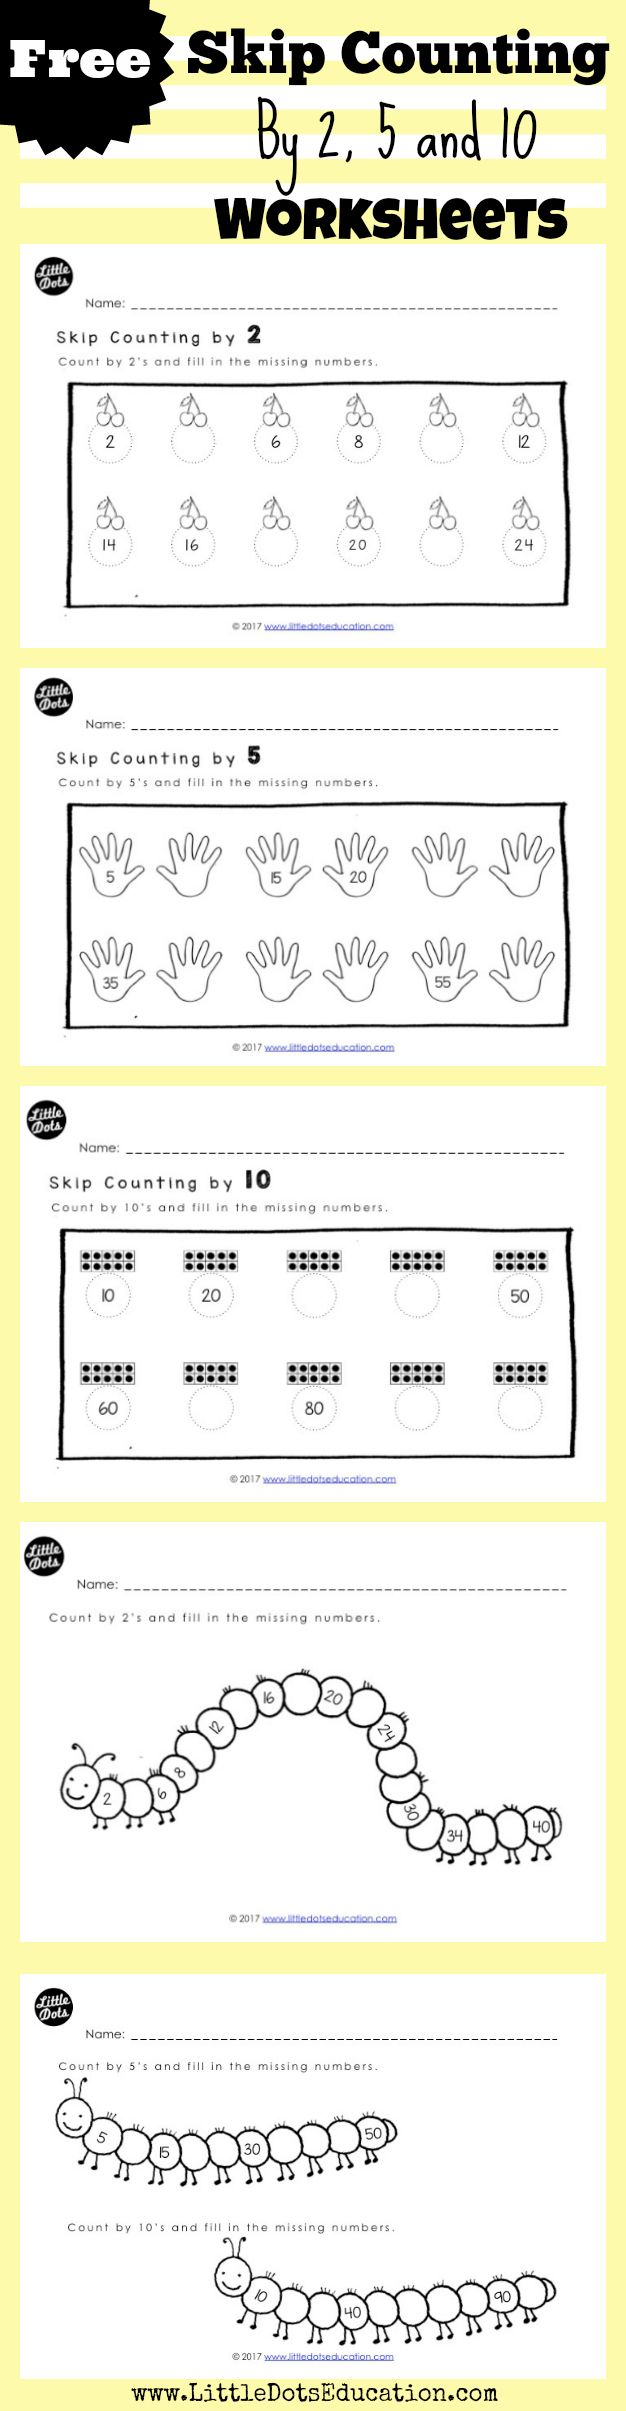 Workbooks k1 worksheets singapore : Best 25+ Skip counting ideas on Pinterest | Skip counting ...